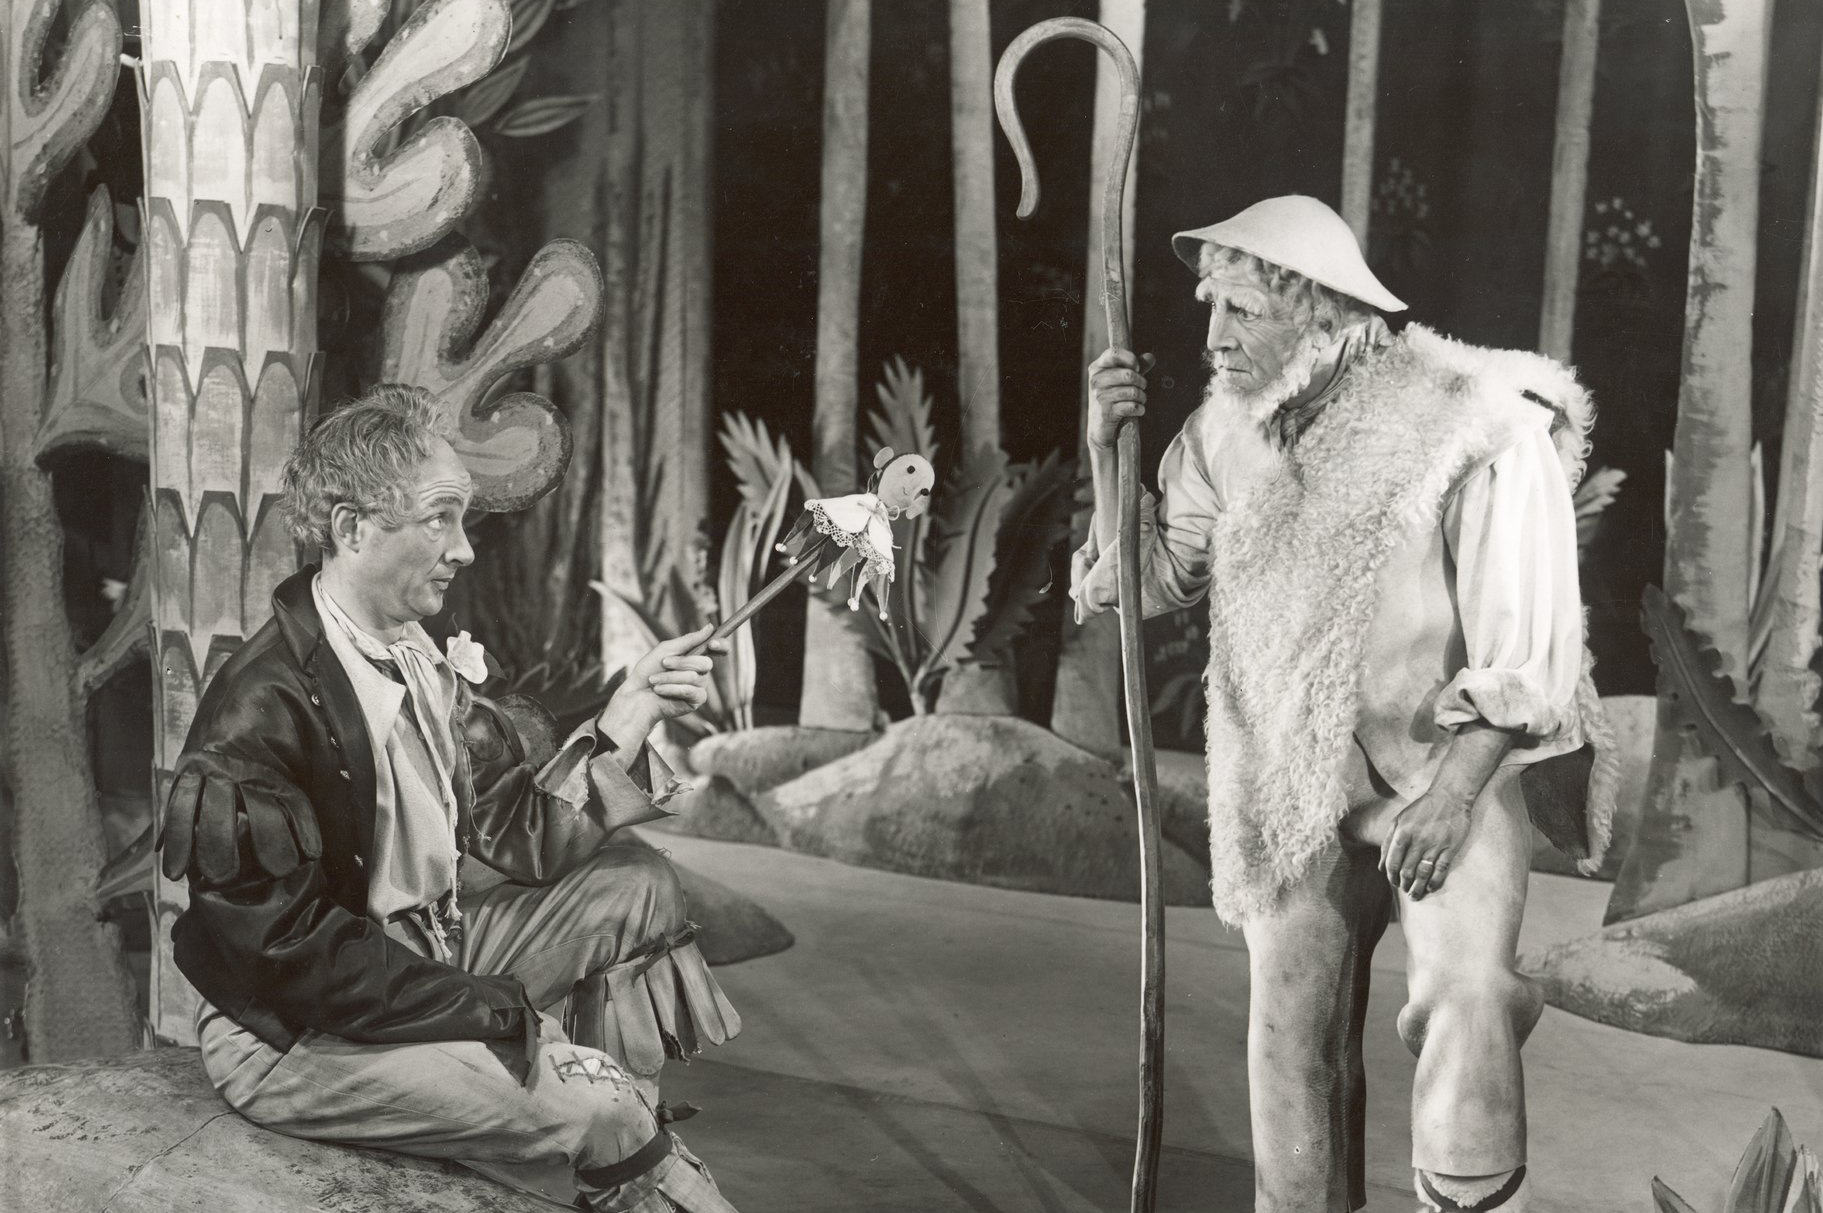 Touchstone and Corin in the forest together.